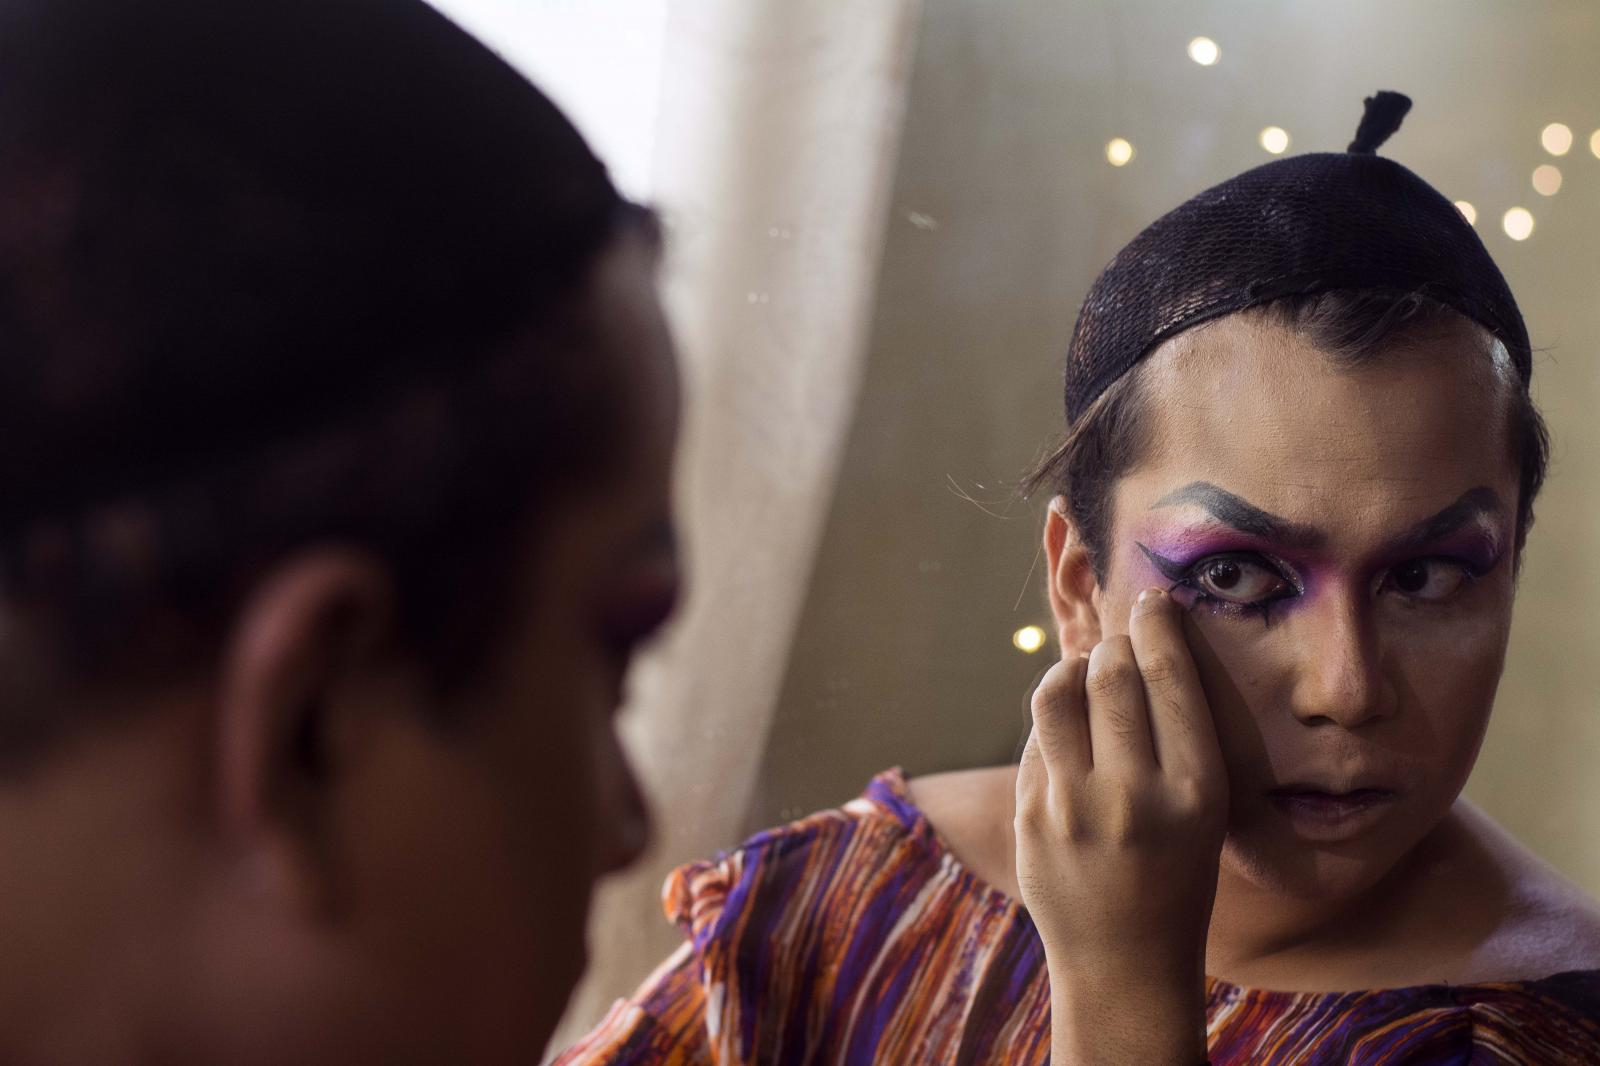 Photography image - Loading The_entire_makeup_is_done_by_the_drag_queen_herself_-_Rimi_Heart_2018_Nikon_A3_INR9000.jpg